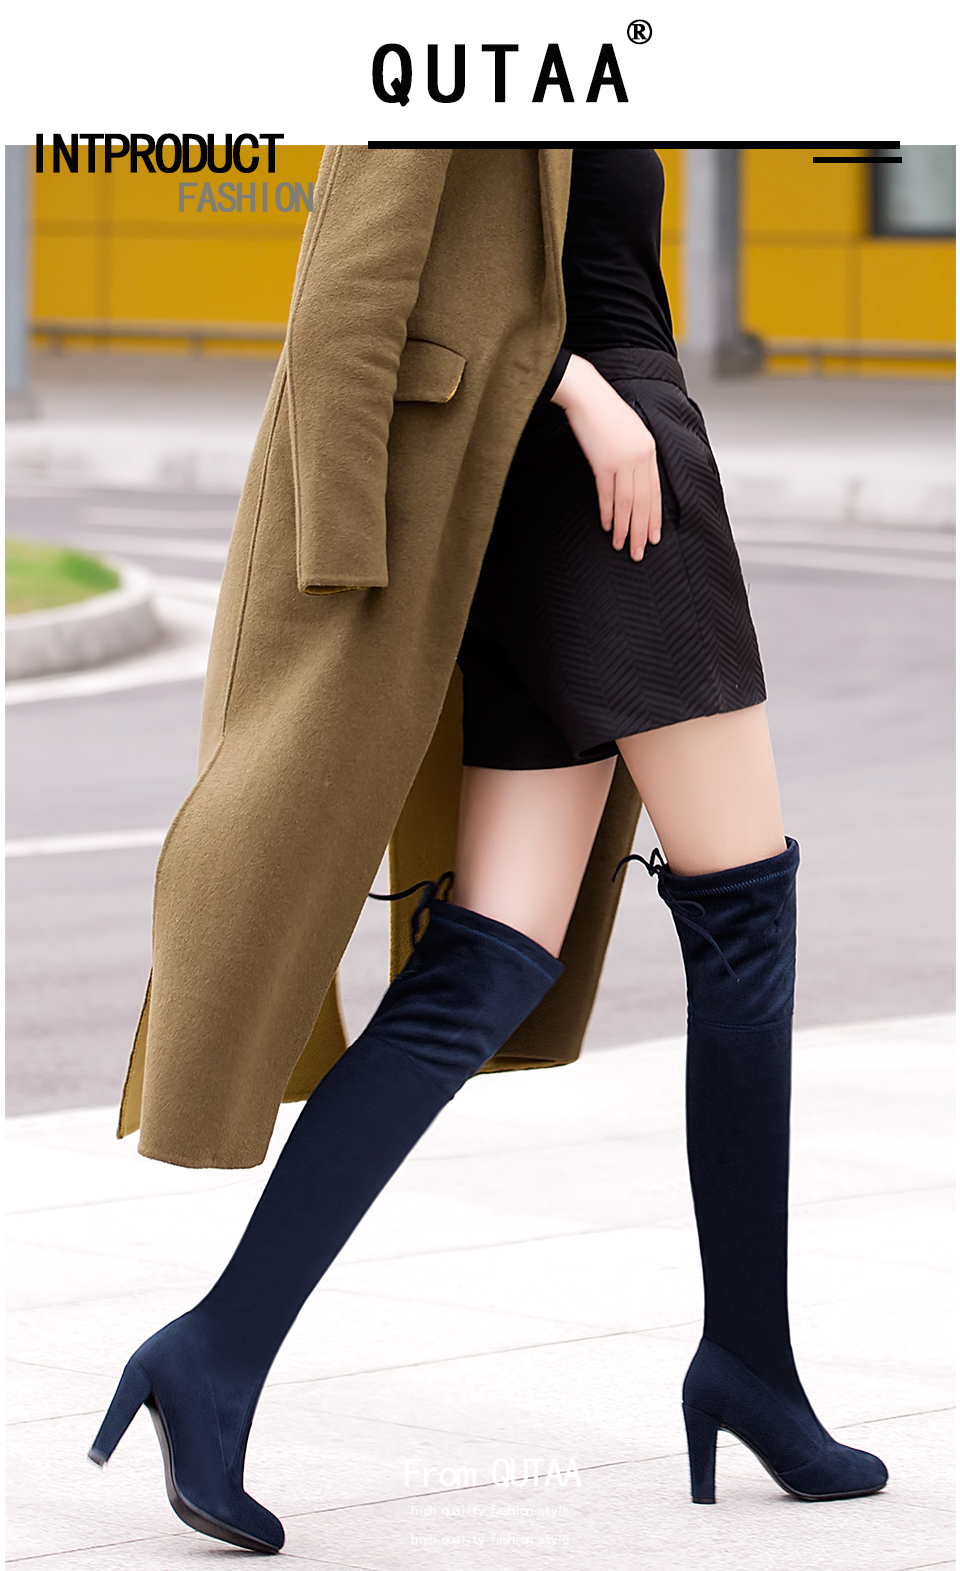 2018 Women's Over The Knee Boots, Fashion Sexy High Boots 10